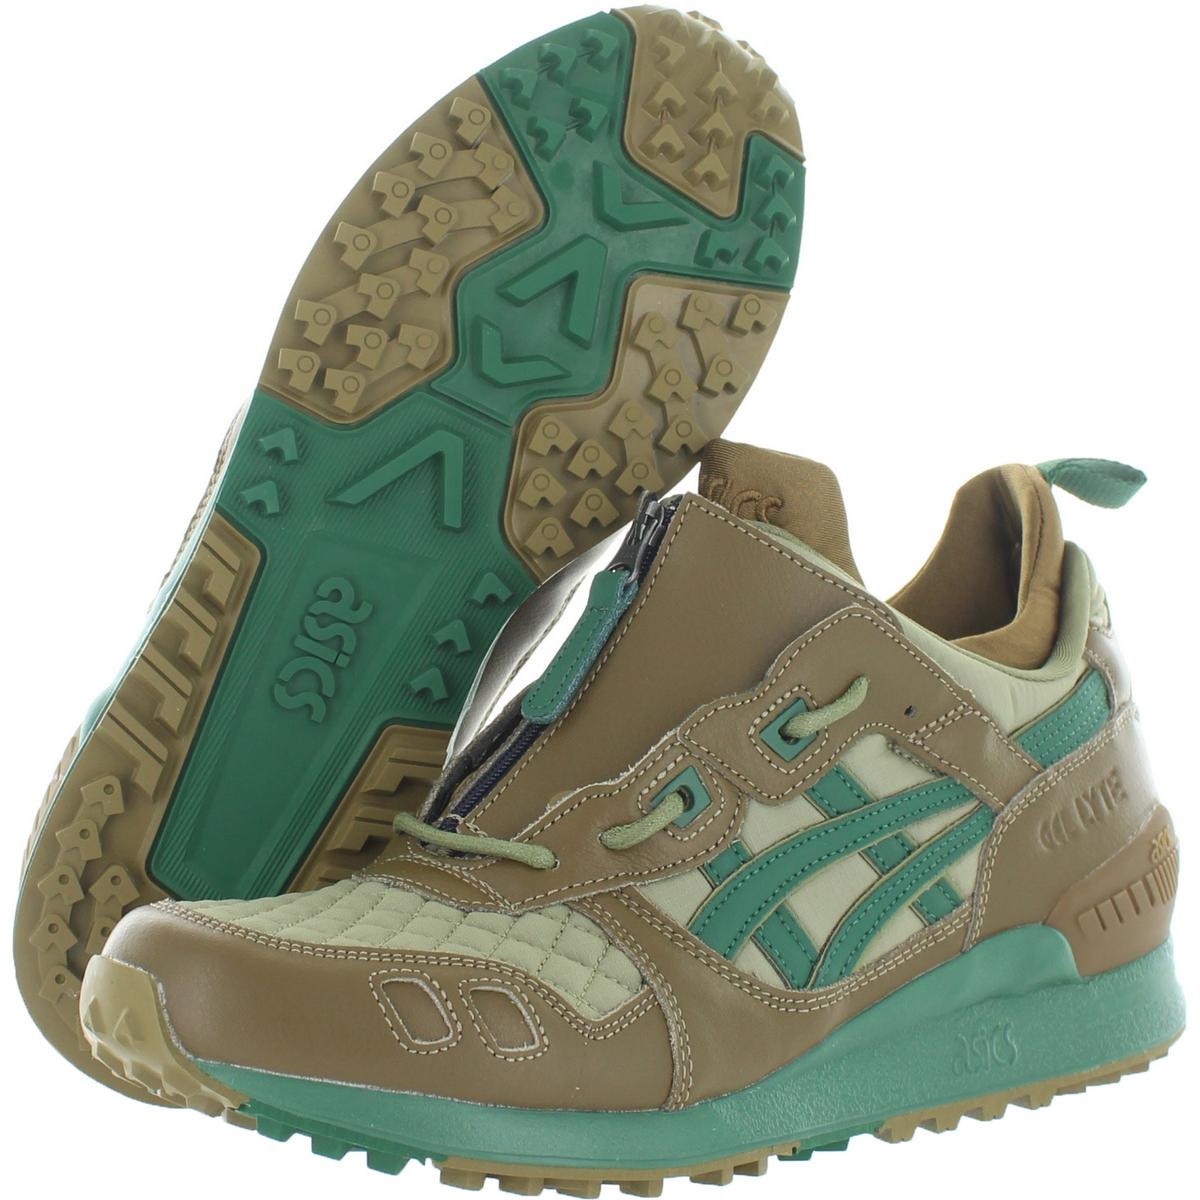 thumbnail 6 - ASICS-Tiger-Mens-Gel-Lyte-MT-Leather-Lace-Up-Mid-Top-Sneakers-Shoes-BHFO-5834